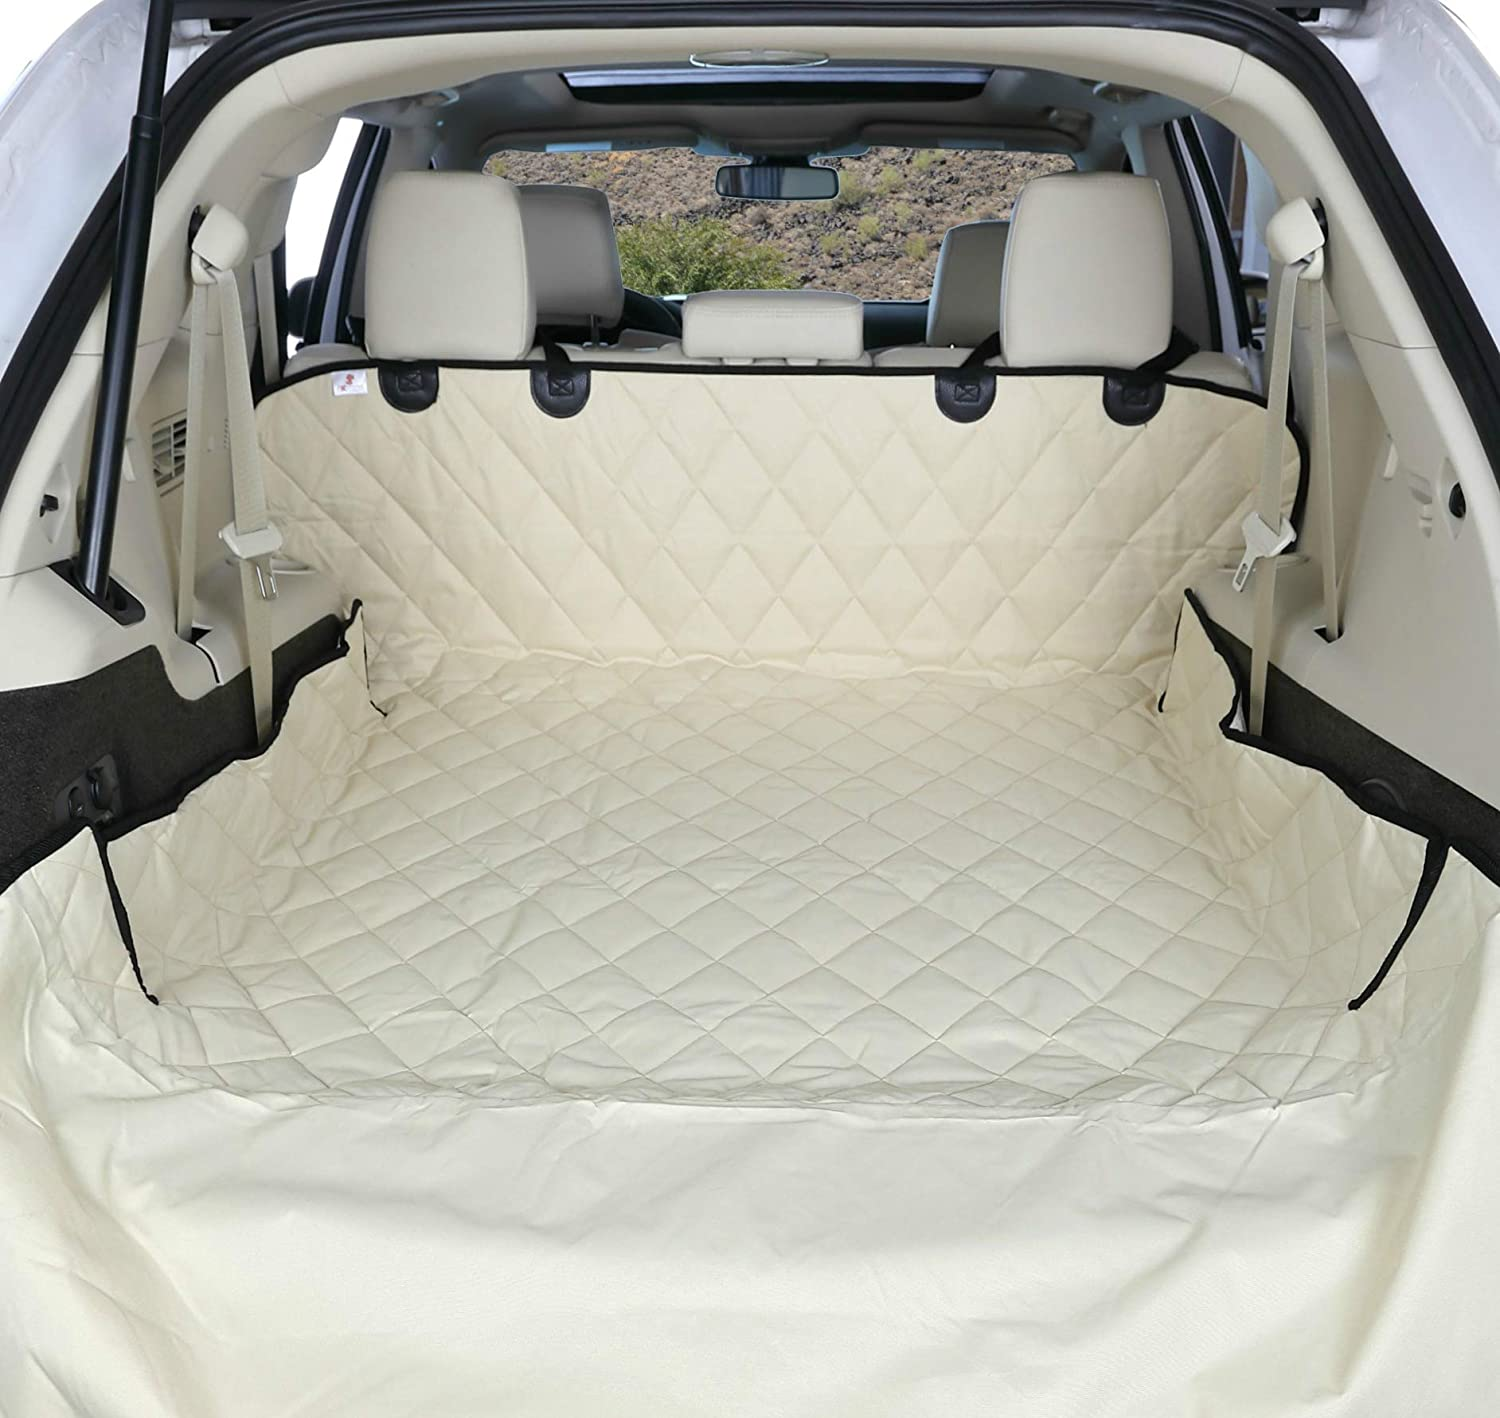 4Knines SUV Cargo Liner for Dogs - USA Based Company 71ybJUbHo-L